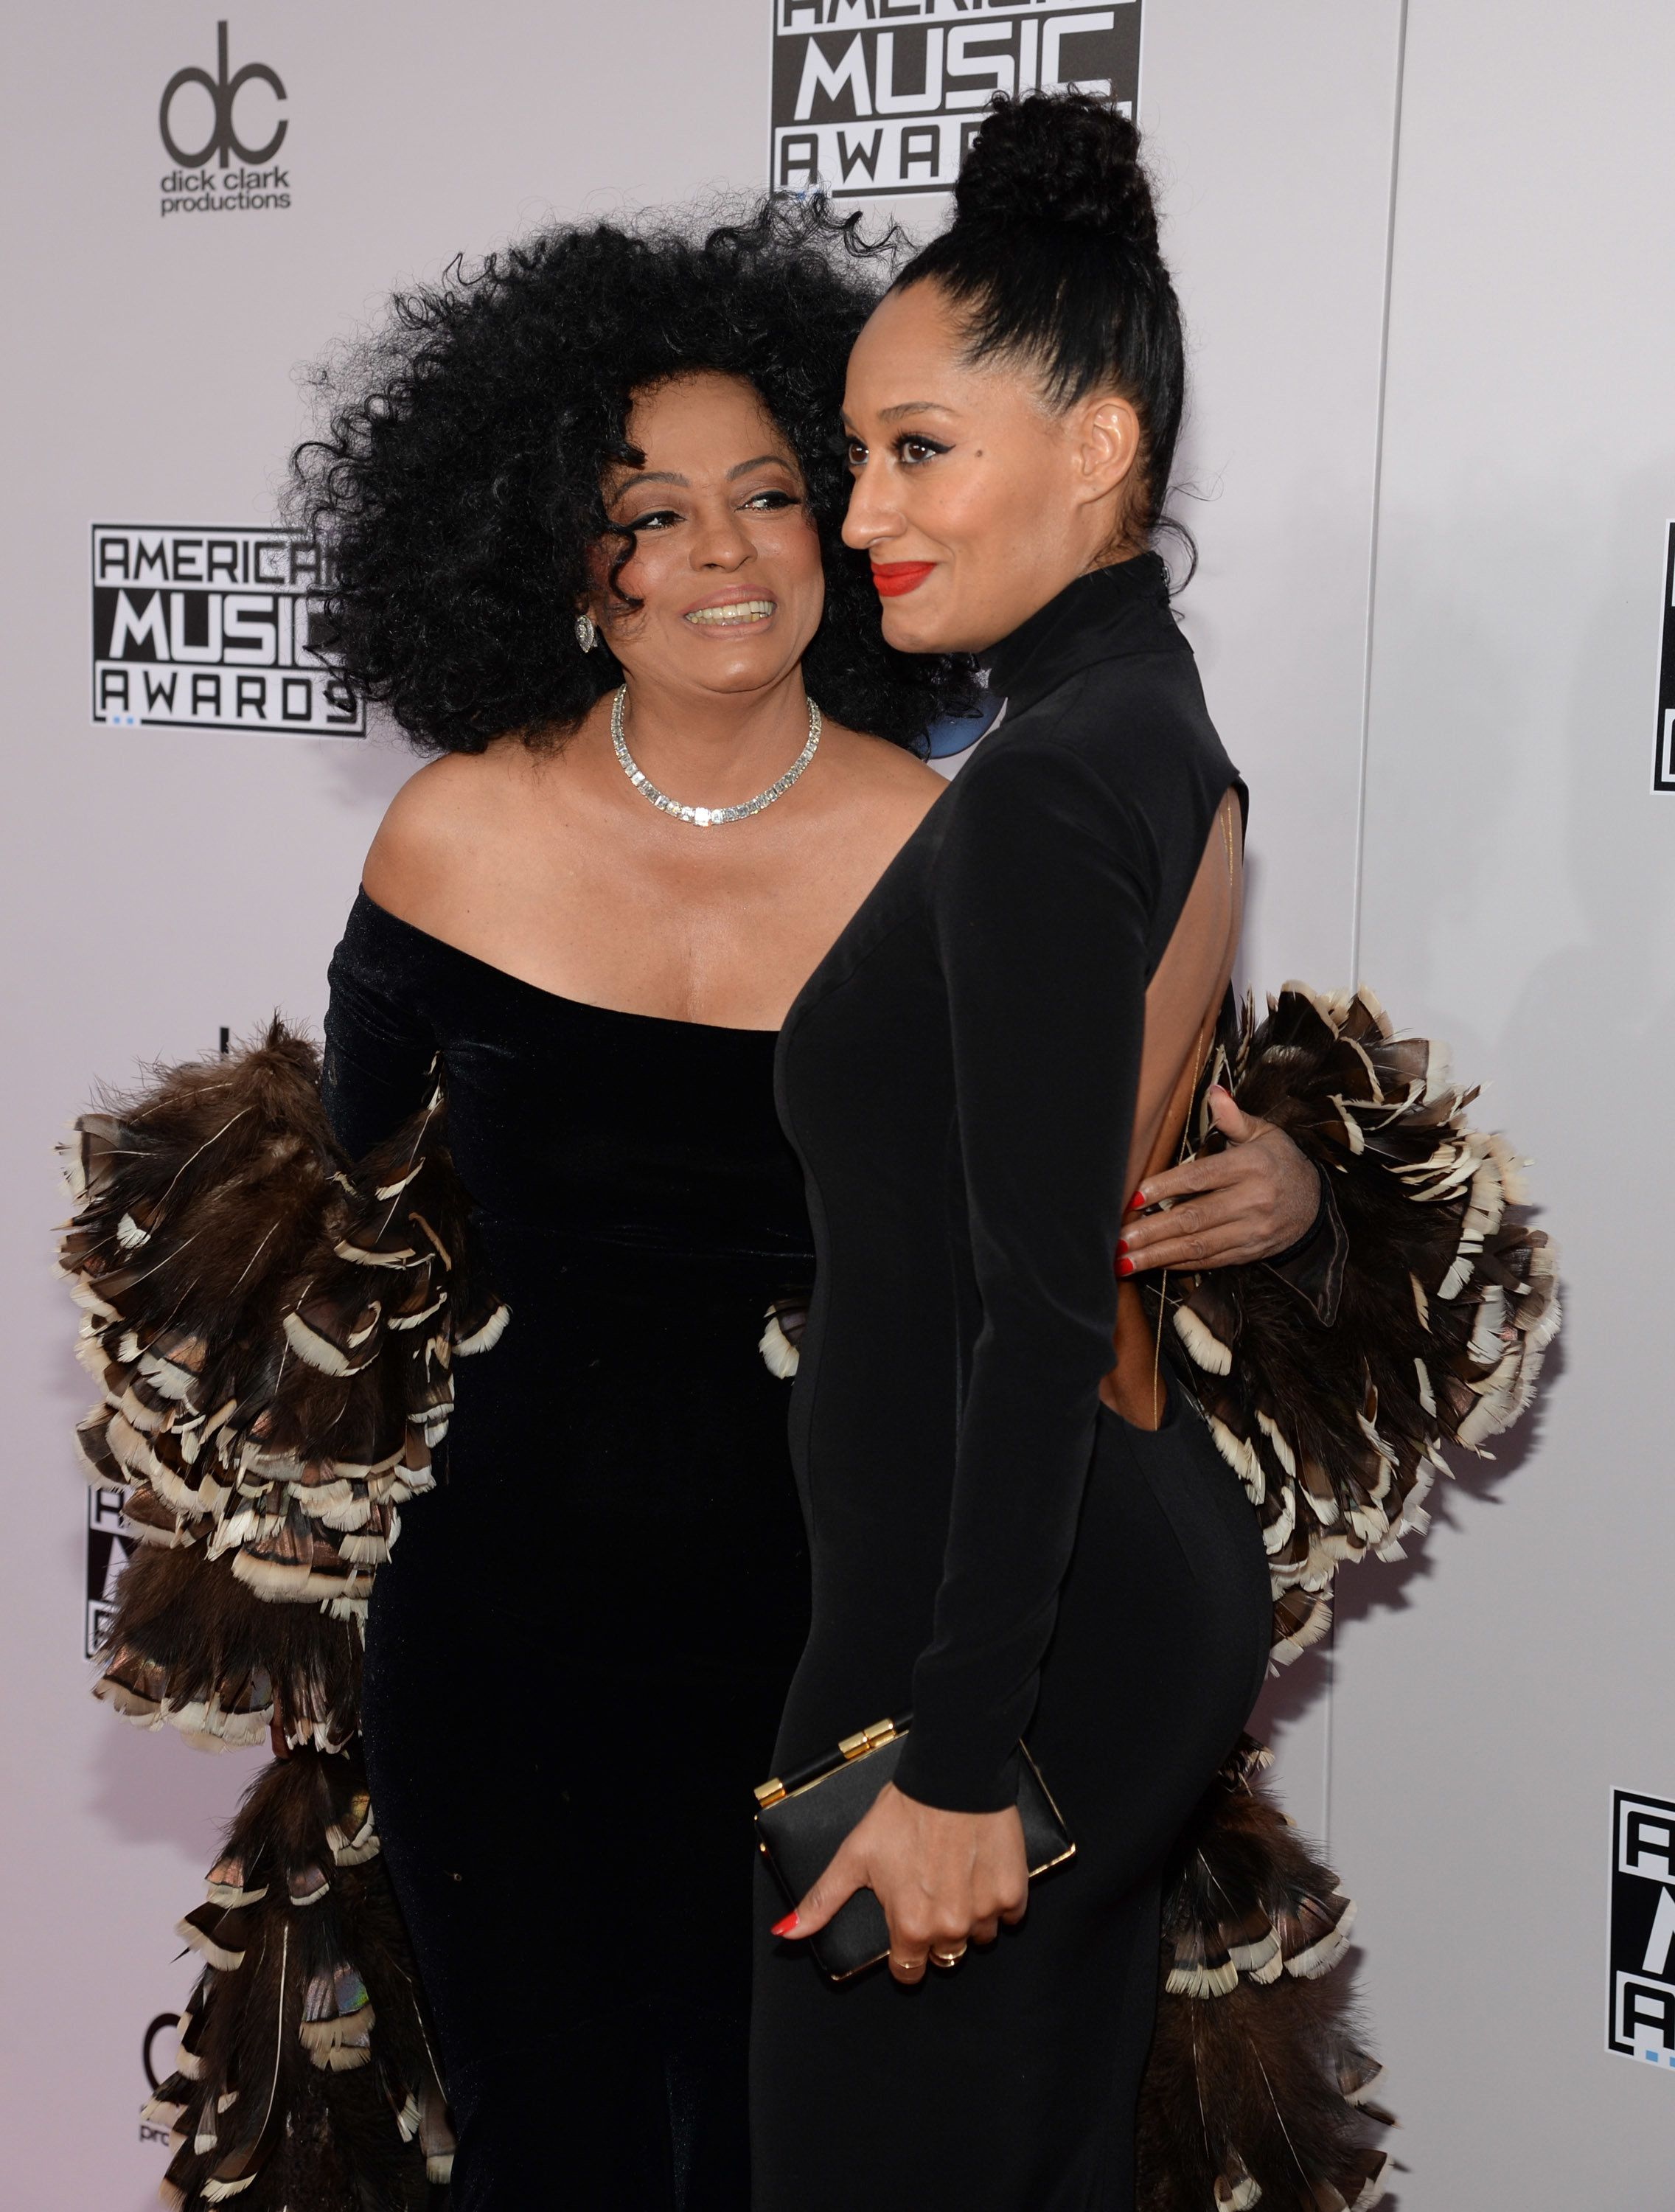 LOS ANGELES, CA - NOVEMBER 23:  Diana Ross and Tracee Ellis Ross attend the 2014 American Music Awards at Nokia Theatre L.A. Live on November 23, 2014 in Los Angeles, California.  (Photo by Kevin Mazur/AMA2014/WireImage)